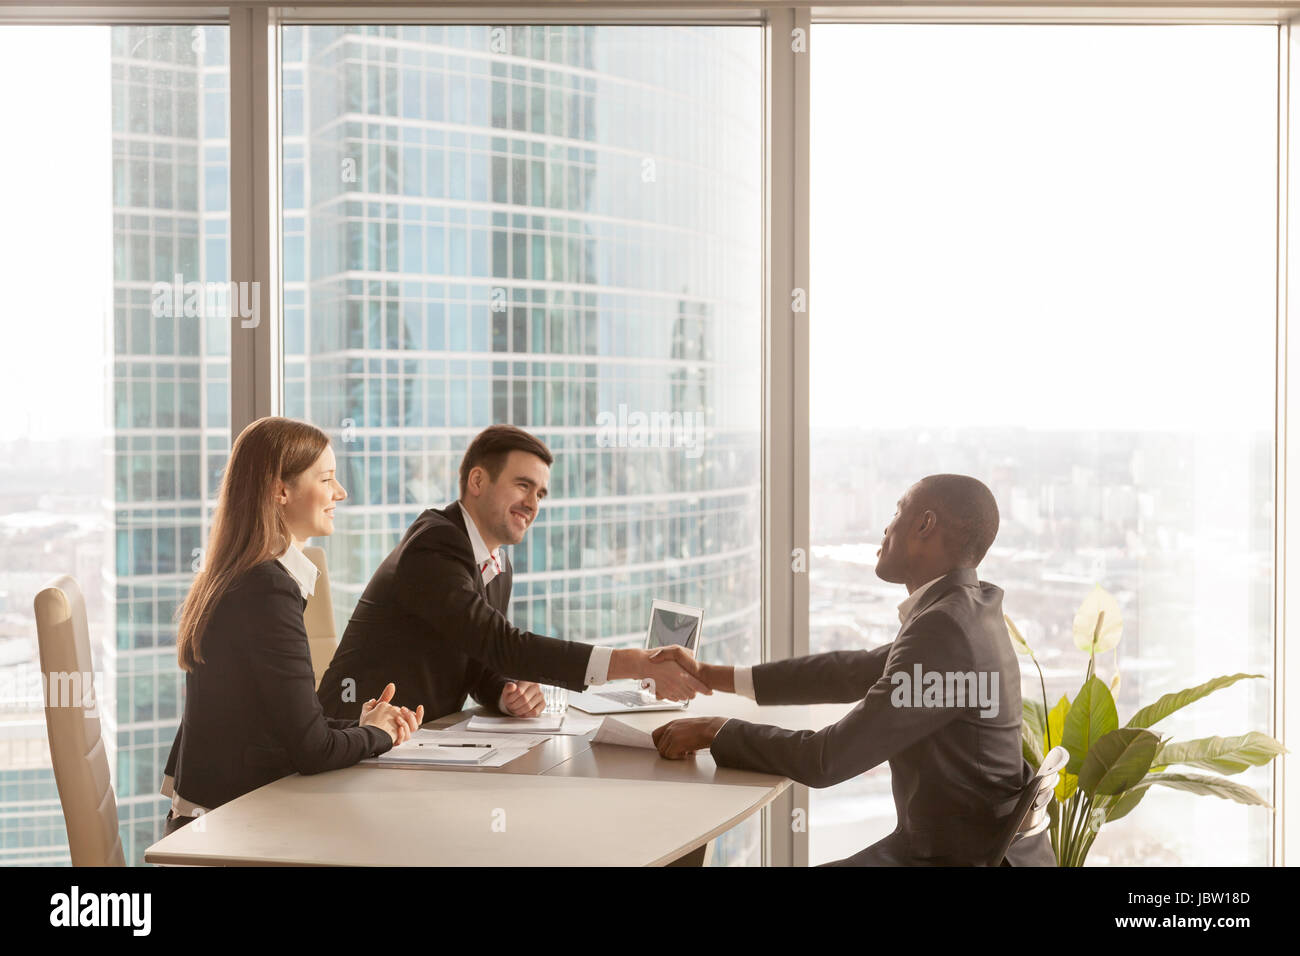 Friendly caucasian employers and confident african-american applicant handshaking during job interview sitting at - Stock Image